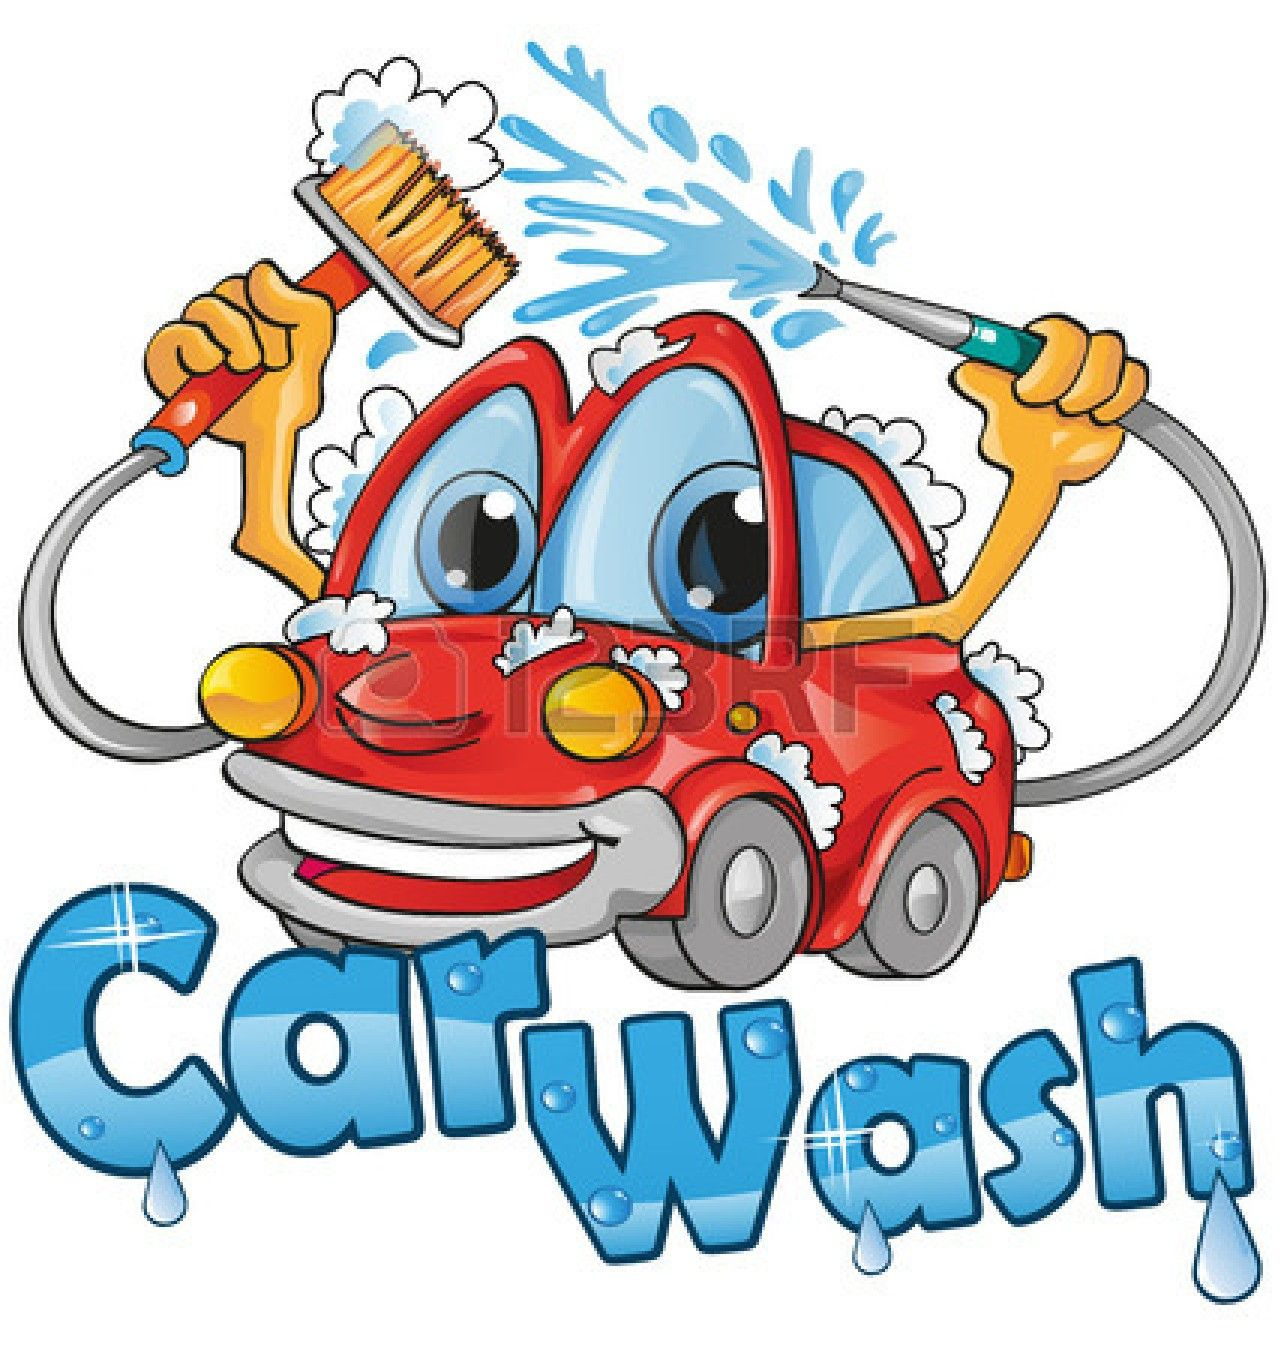 Carwashing clipart svg Pin by Nay Win Htun on All things | Car wash posters, Car wash, Car ... svg